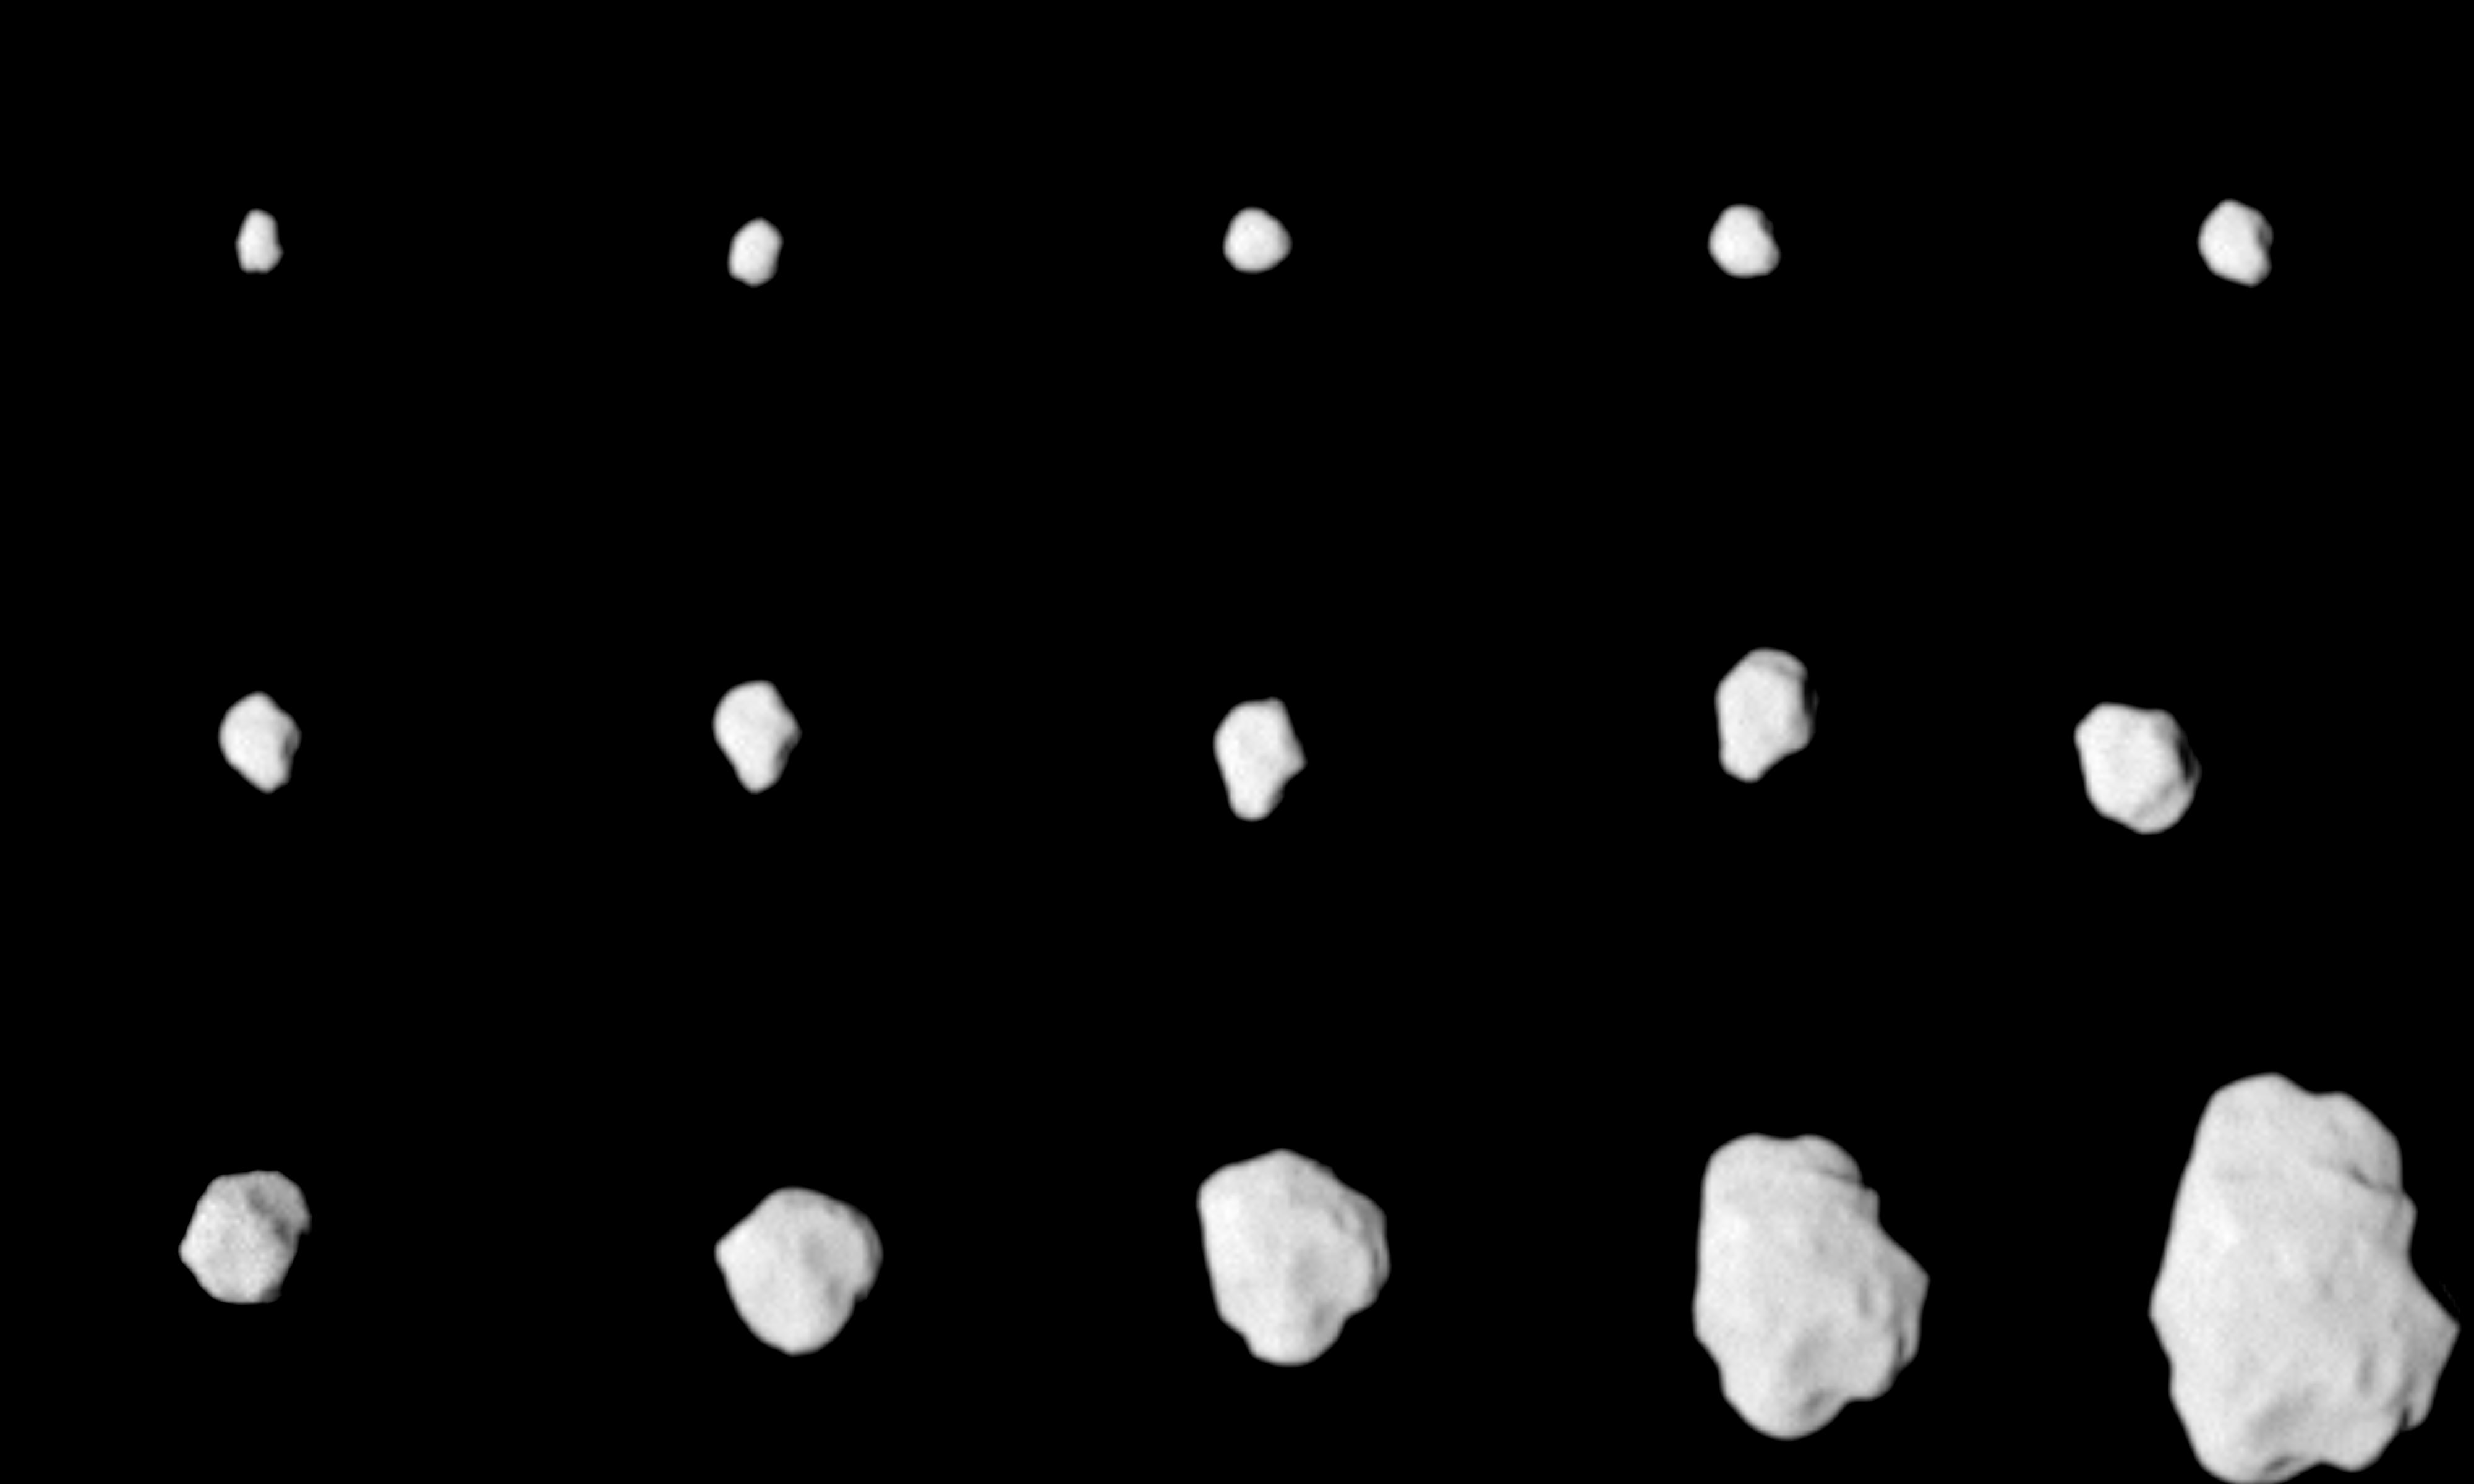 Asteroid Lutetia: Target in Sight